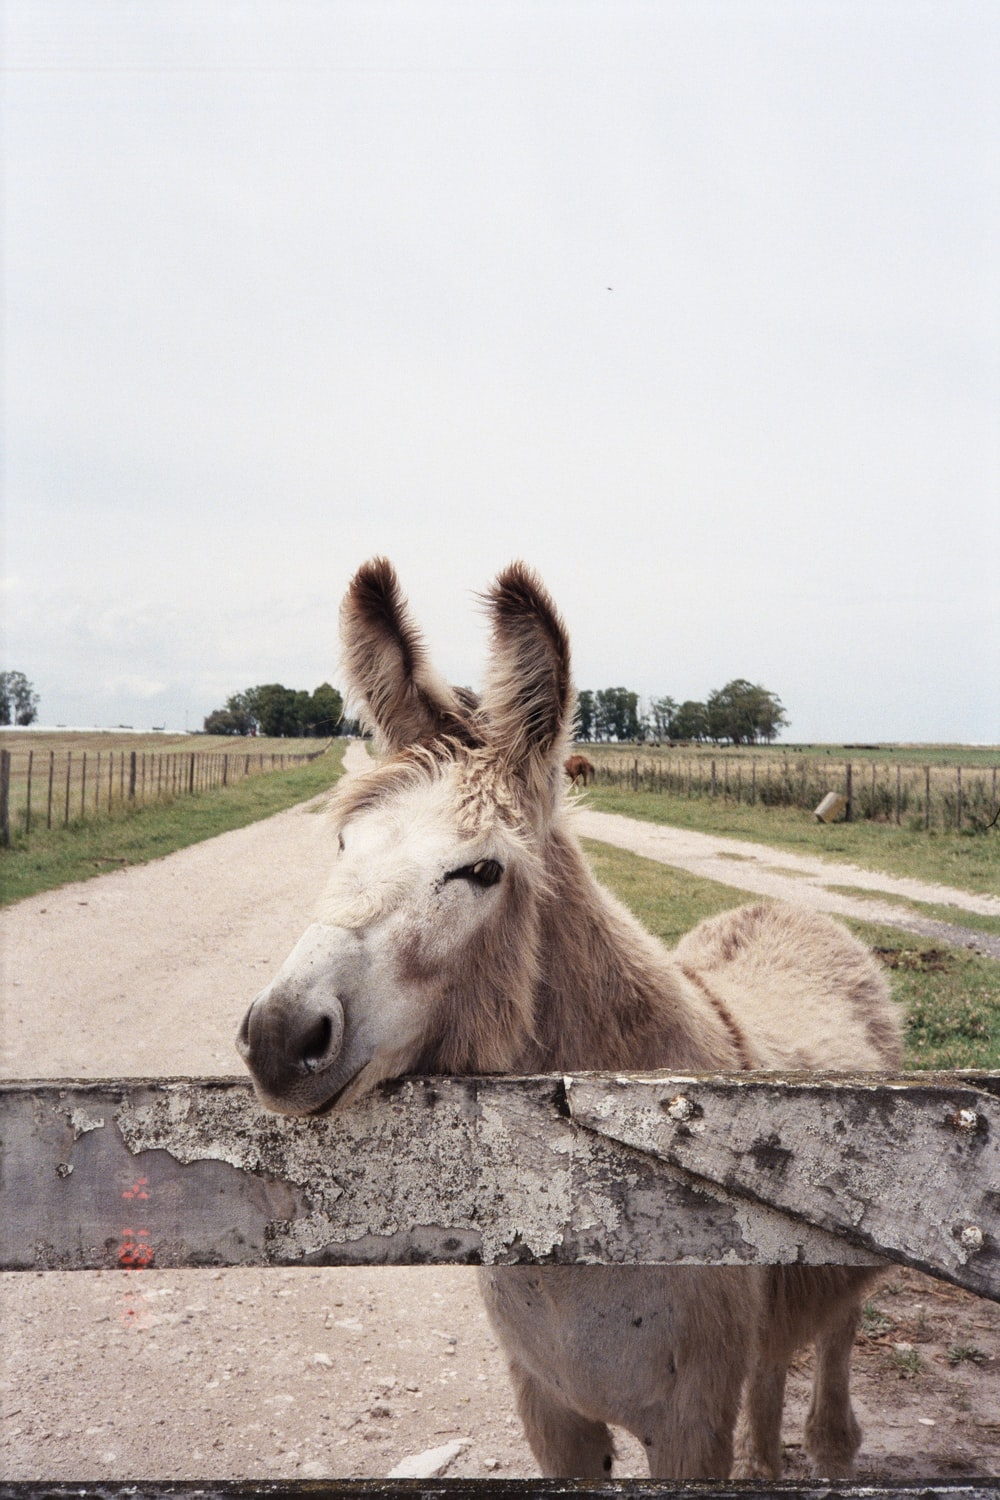 brown horse on gray concrete ground during daytime